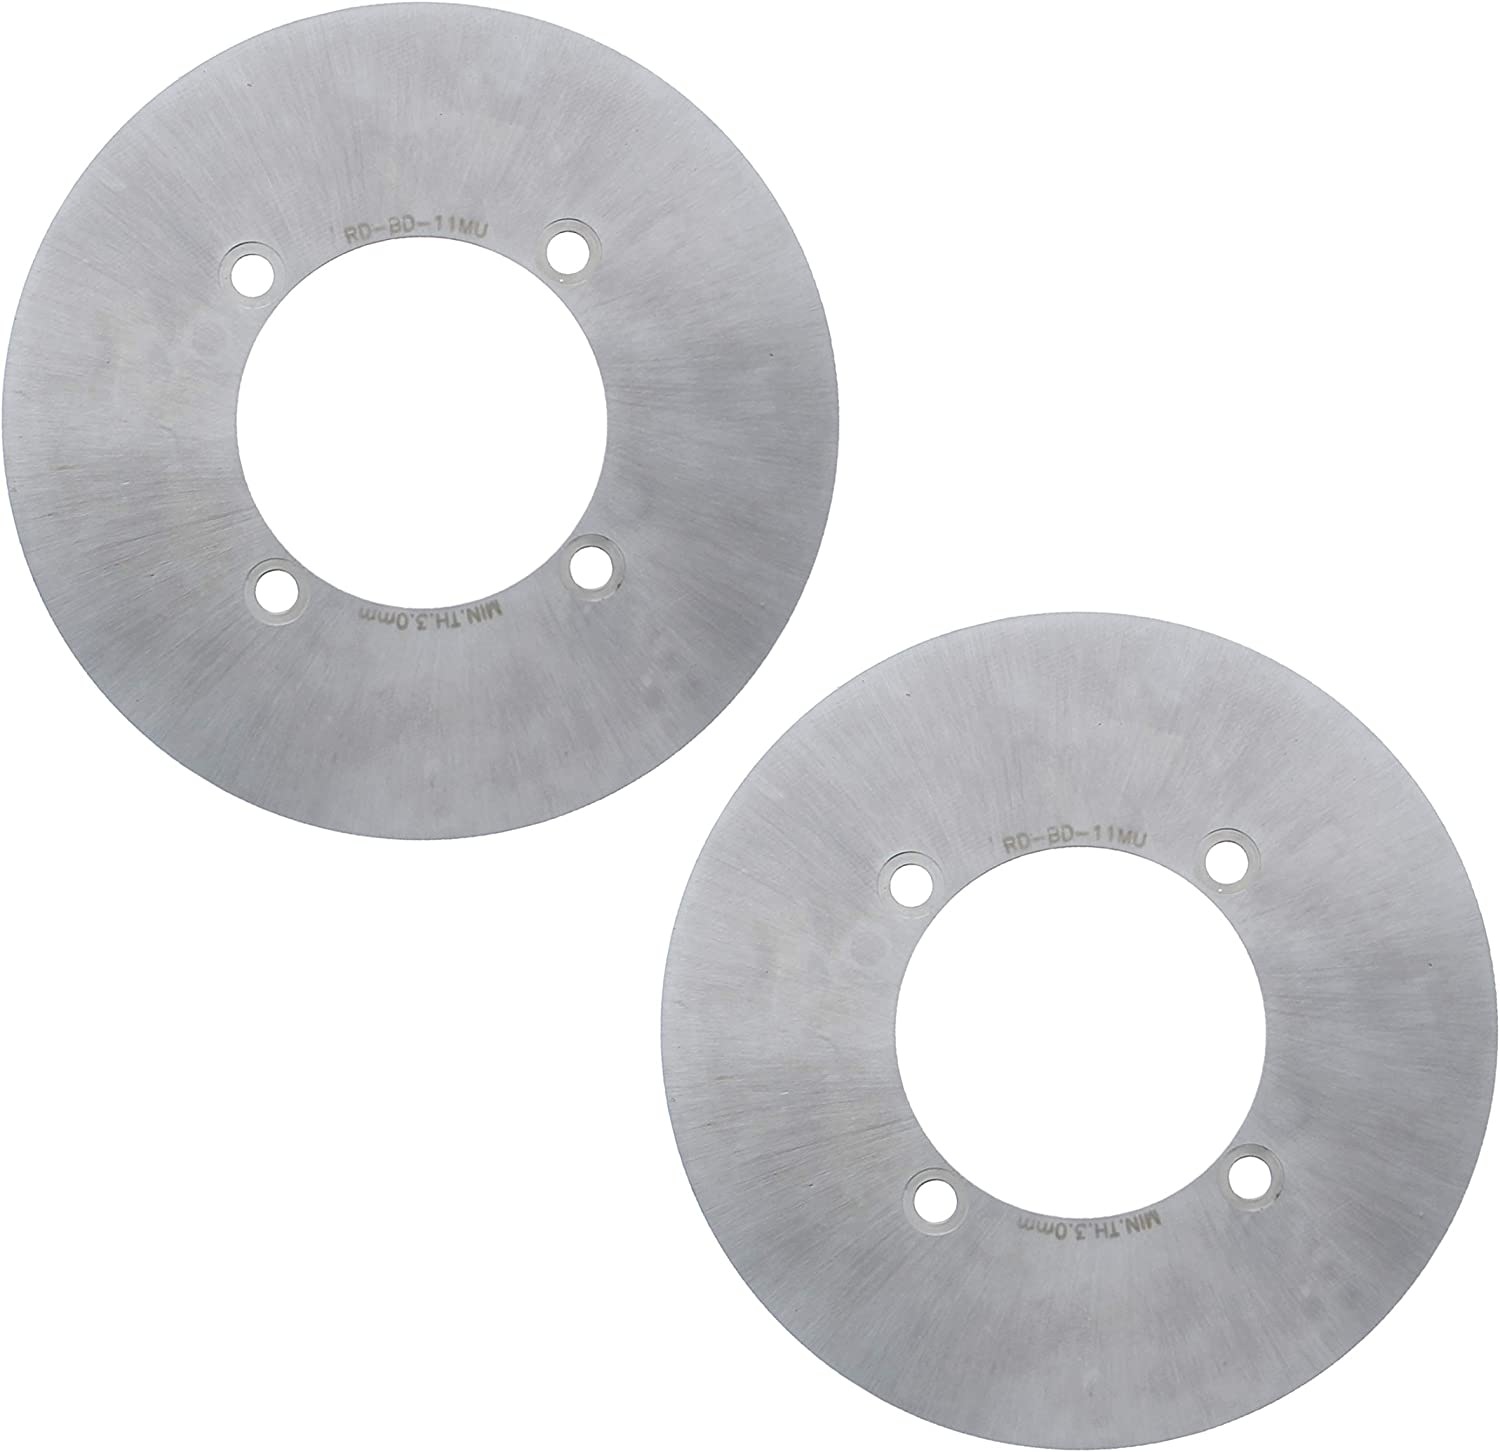 Brake Rotors for Yamaha Kodiak 700 YFM700 2016-2019 Front MudRat Brake Discs